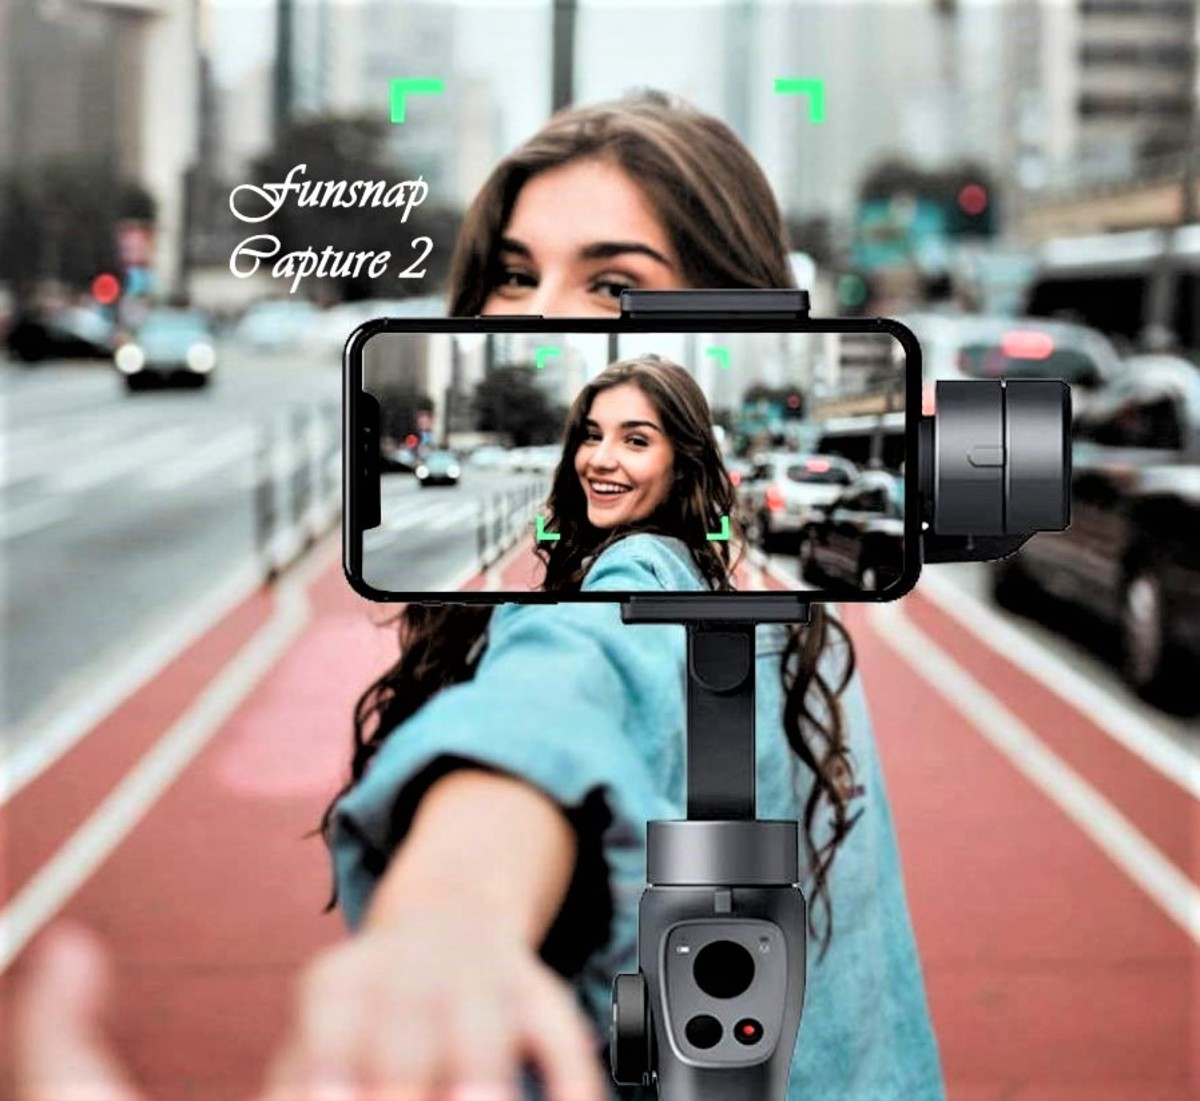 Funsnap Capture 2 Review: The Best YouTube Vlog Camera Stabilizer You've Never Heard Of